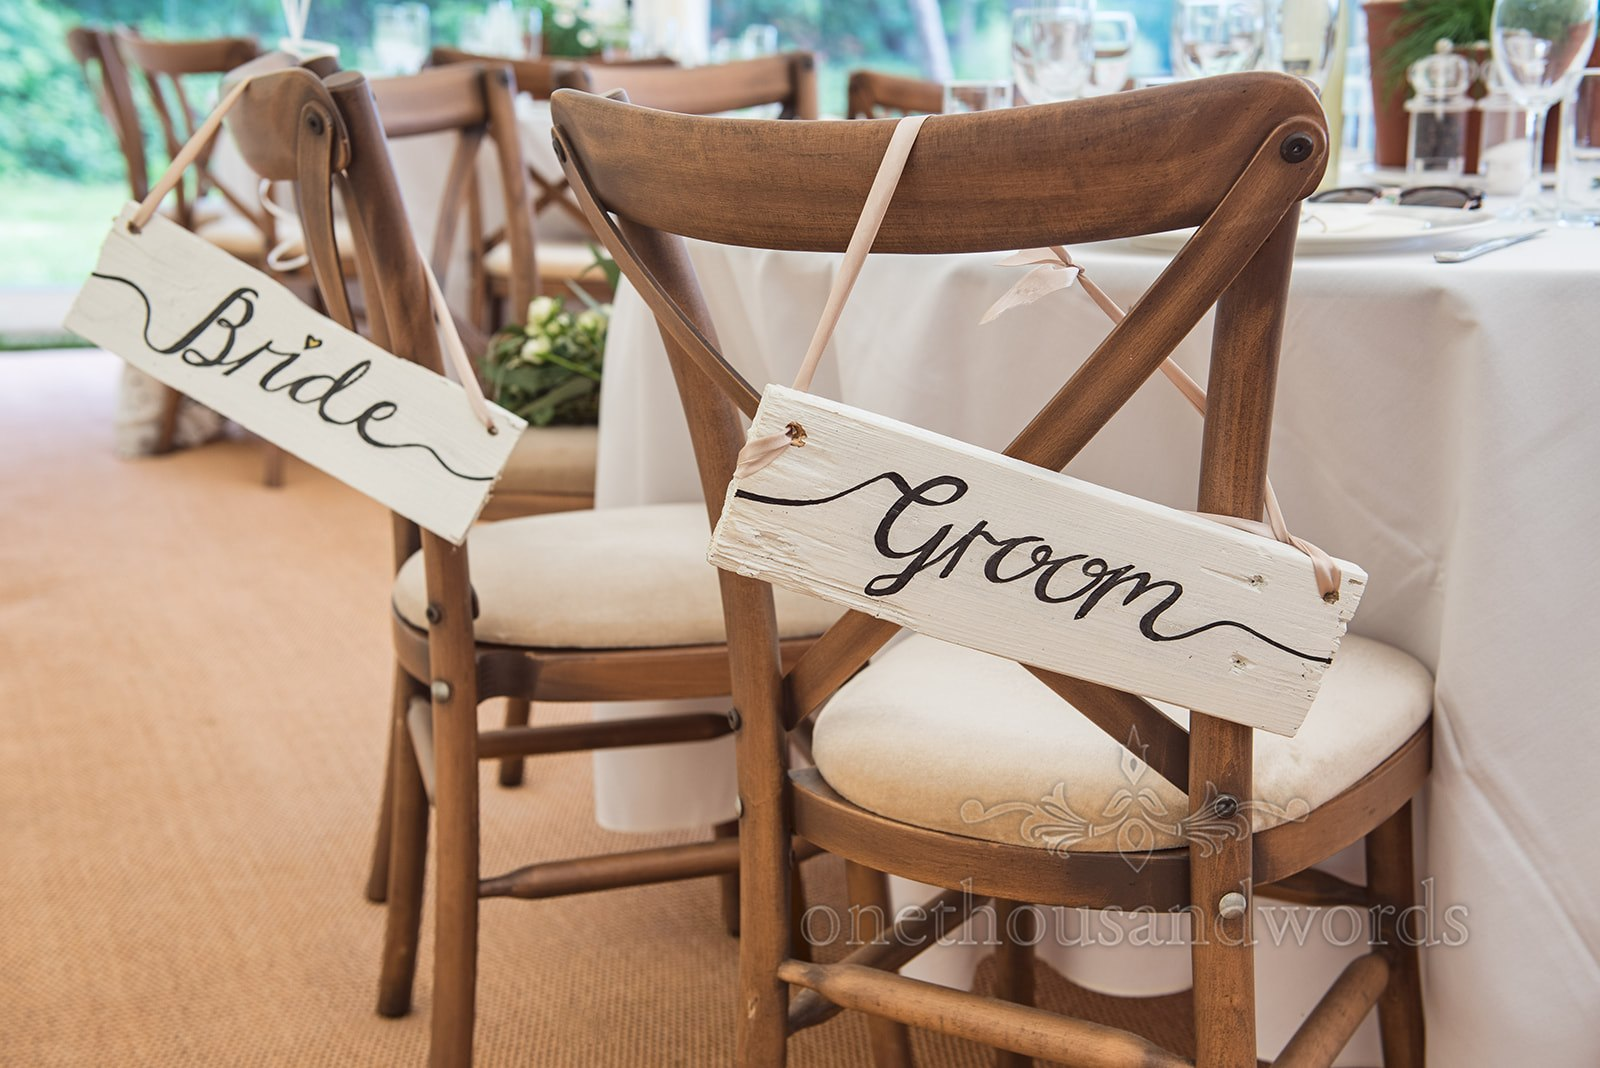 One Thousand Words Photography Bride and Groom Seats at Wedding Breakfast